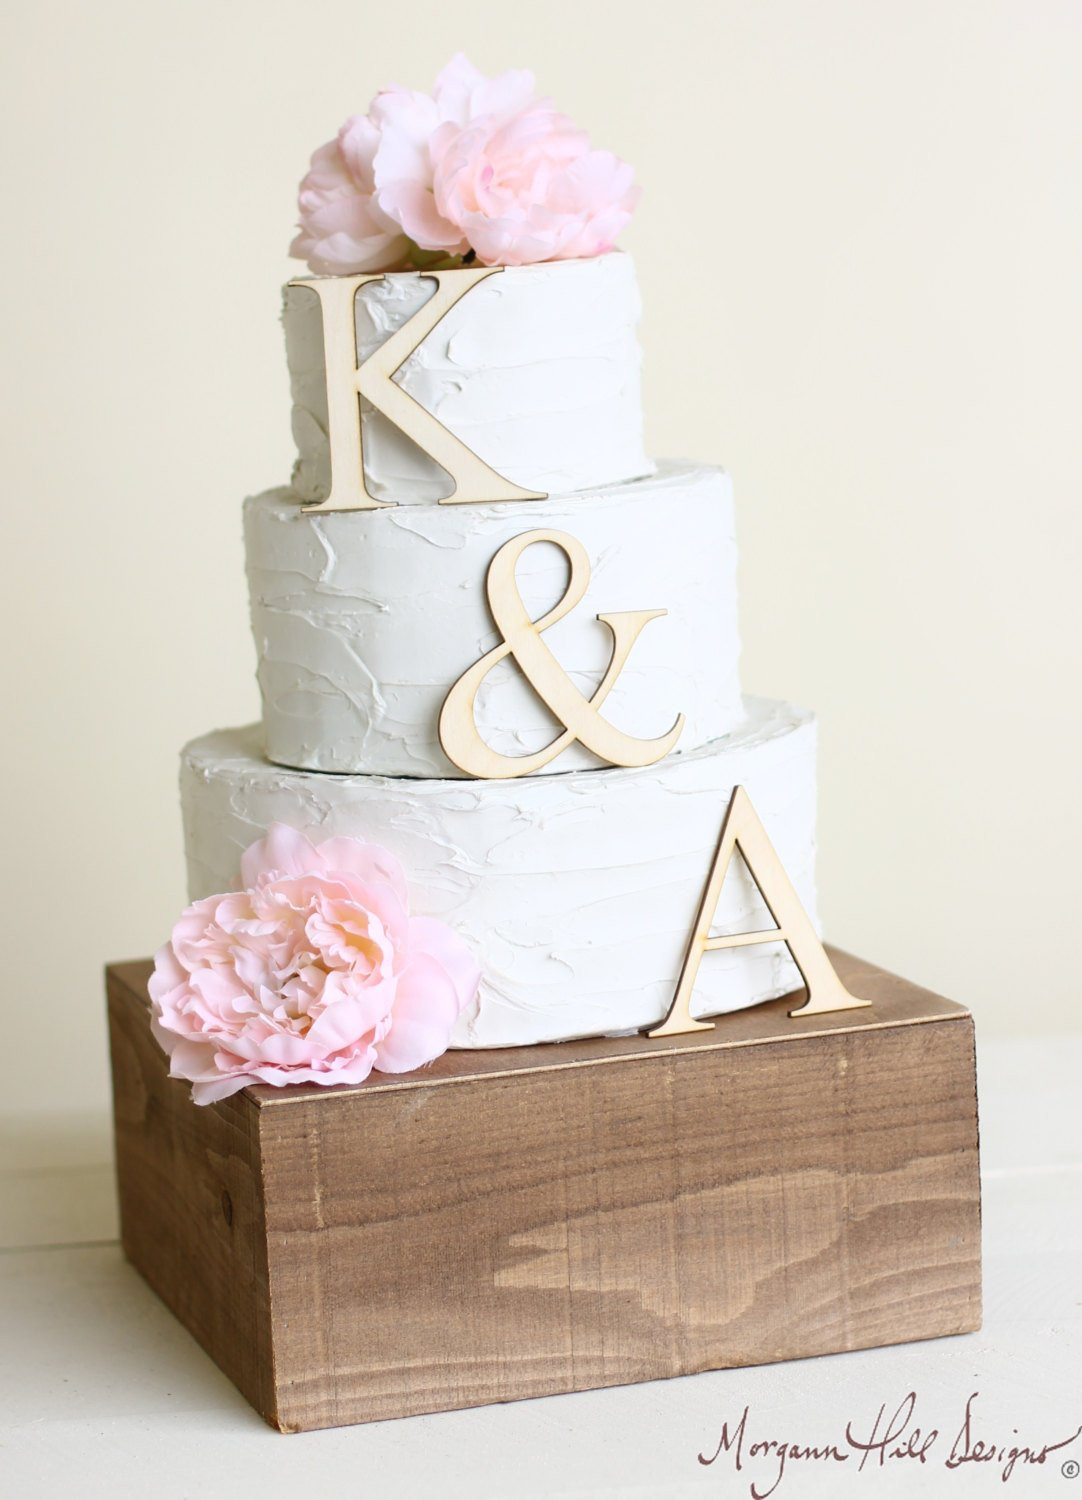 Personalized Cake Toppers For Wedding Cakes  Personalized Wedding Cake Topper Wood Initials by braggingbags